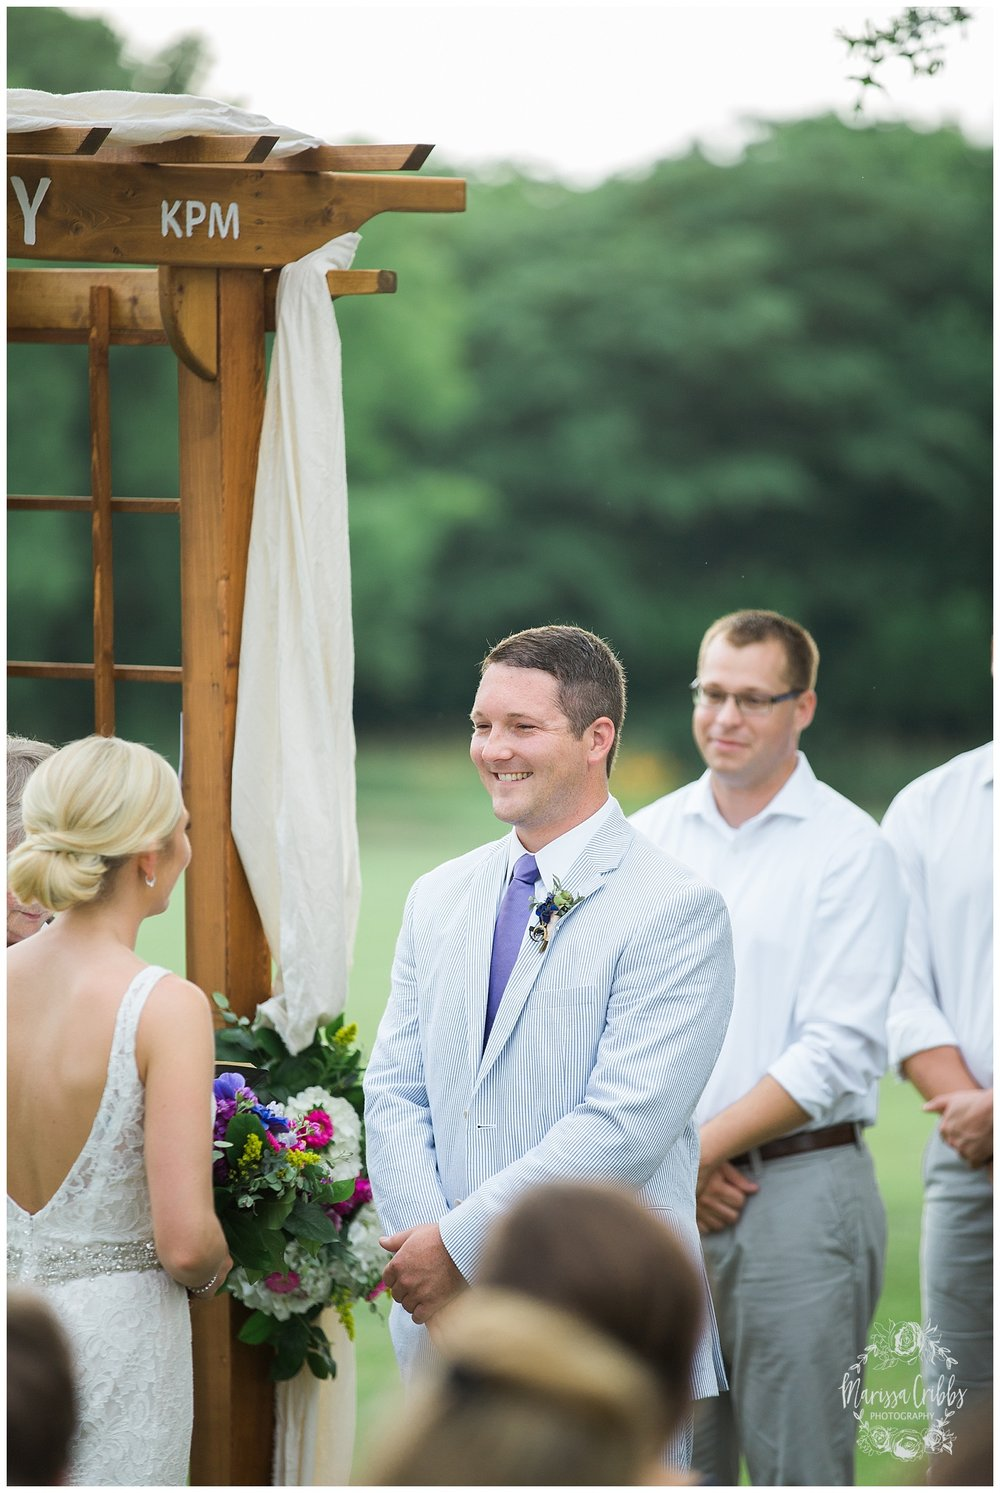 ALLISON & KEVIN WEDDING AT ST ANDREWS GOLF COURSE | MARISSA CRIBBS PHOTOGRAPHY_1756.jpg